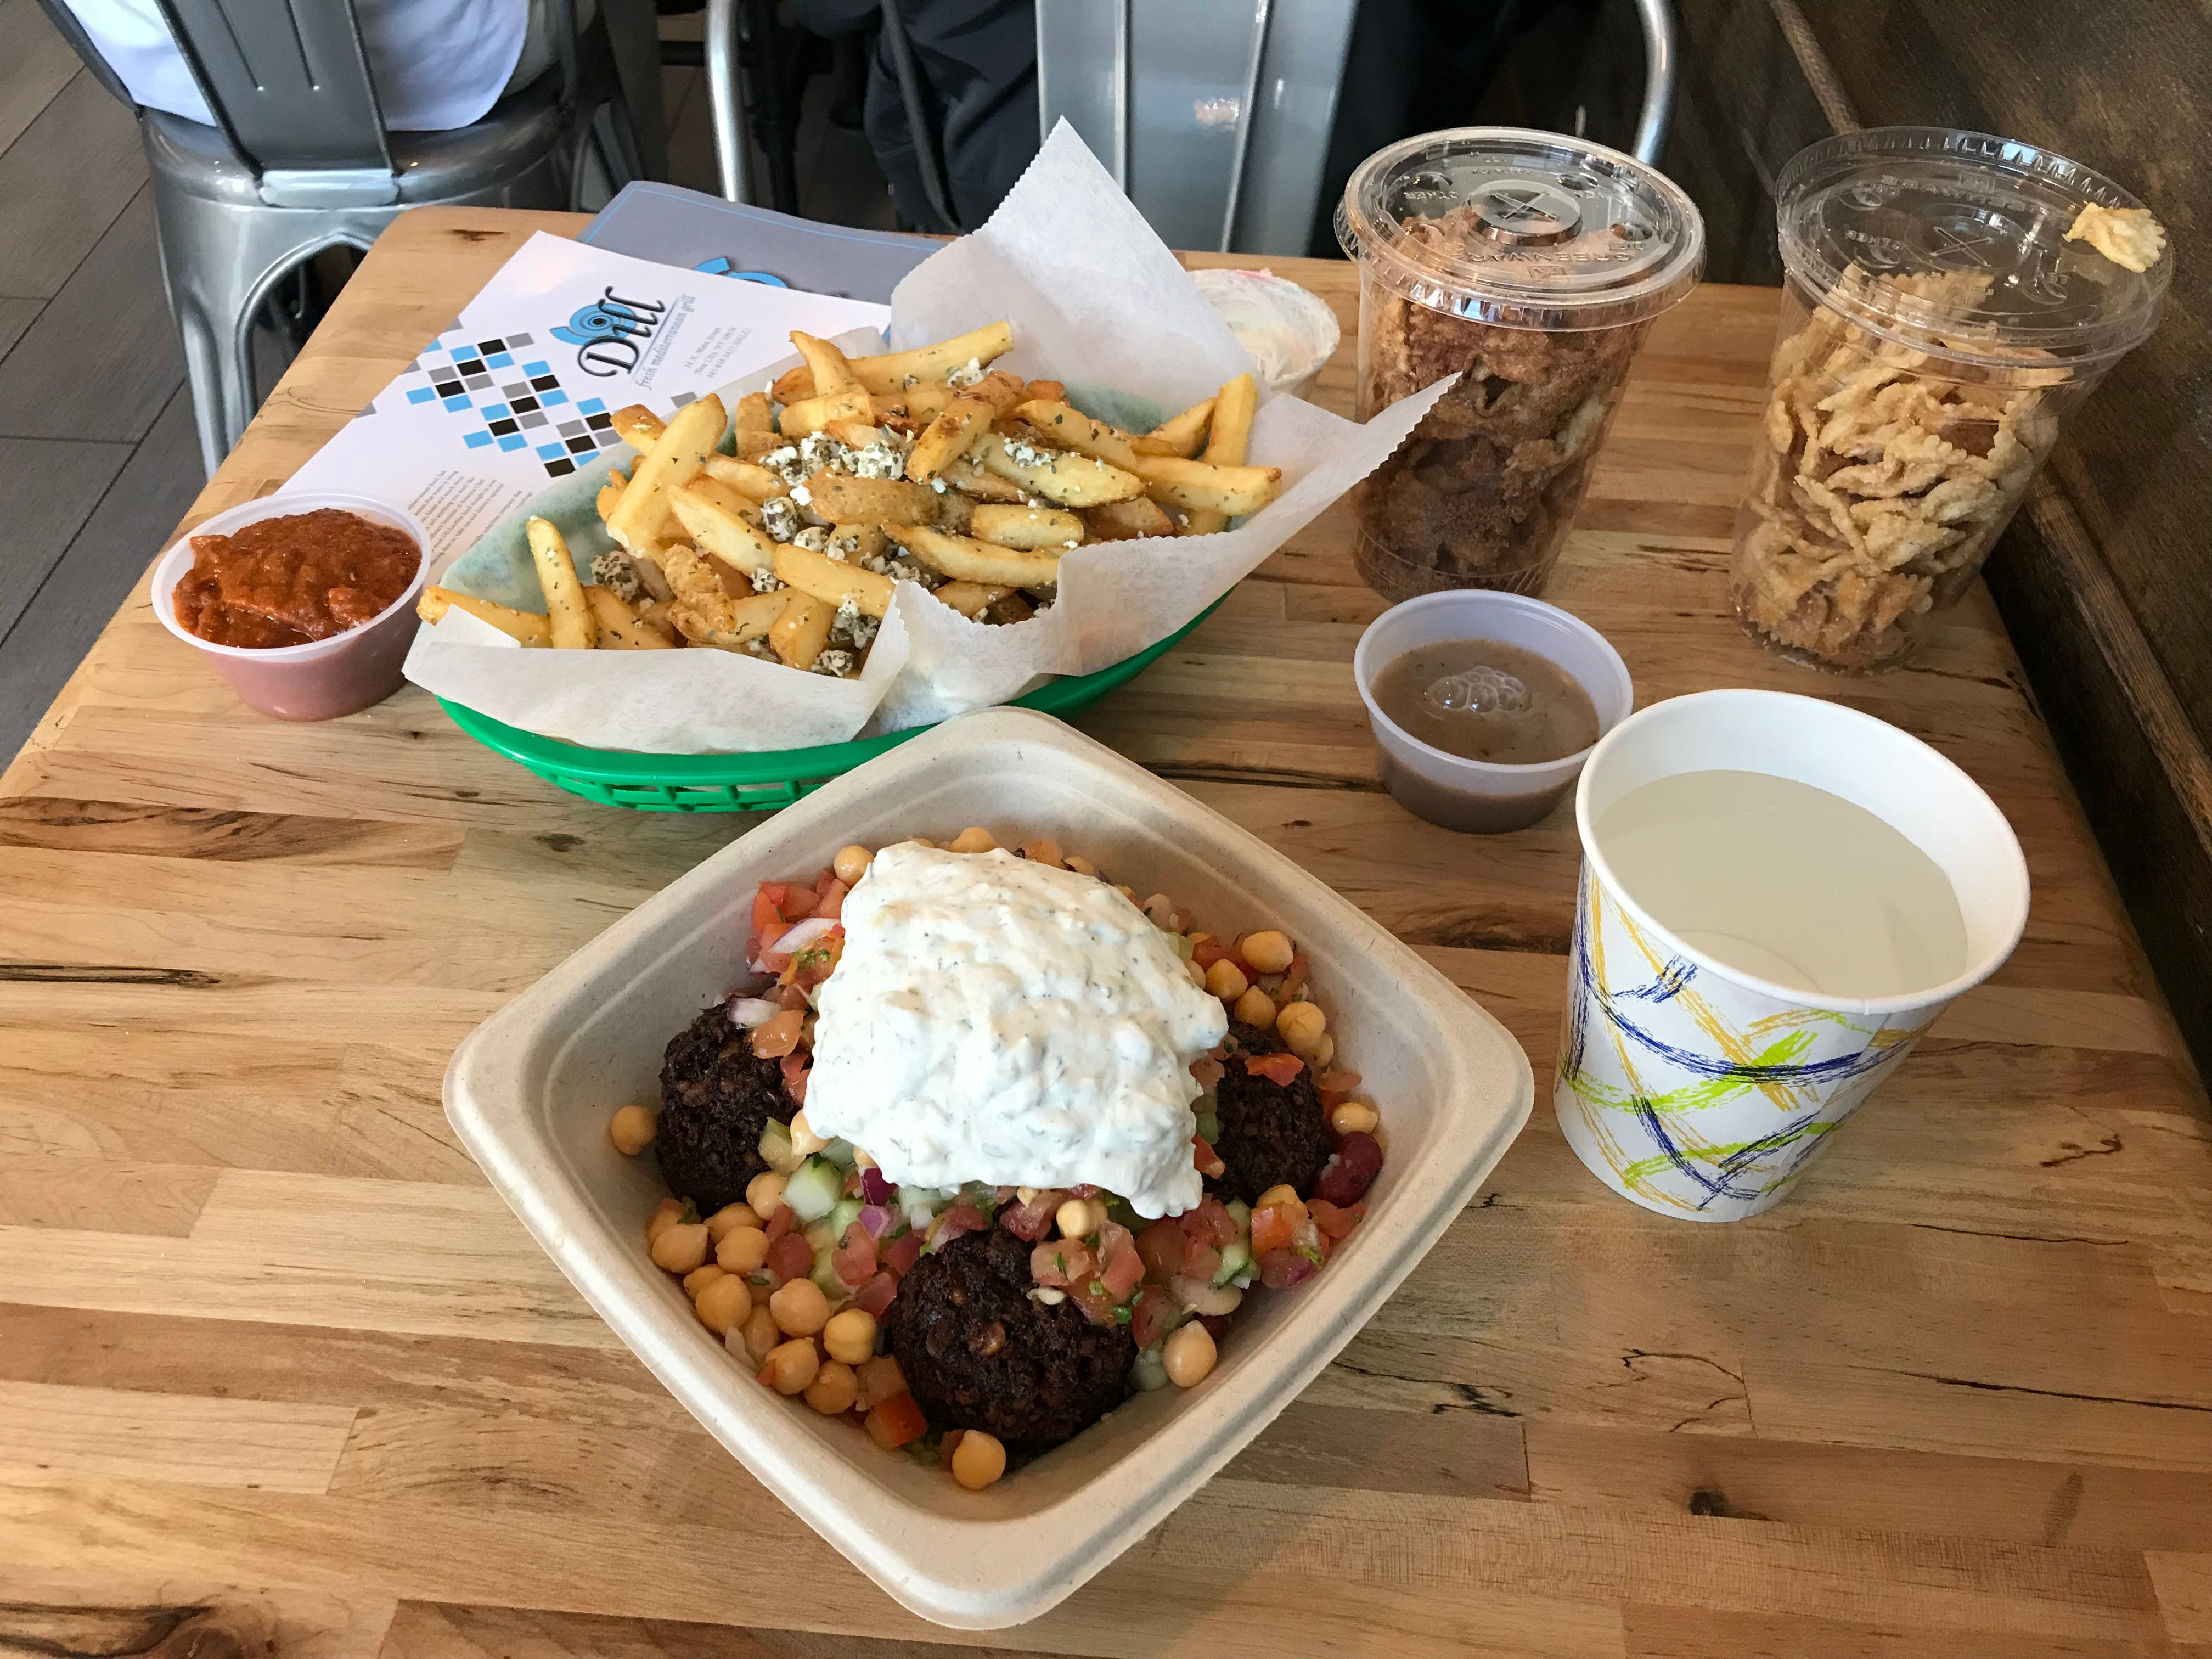 Greek fries and a falafel bowl at Dill Fresh Mediterranean Grill in New City. Photographed May 2018